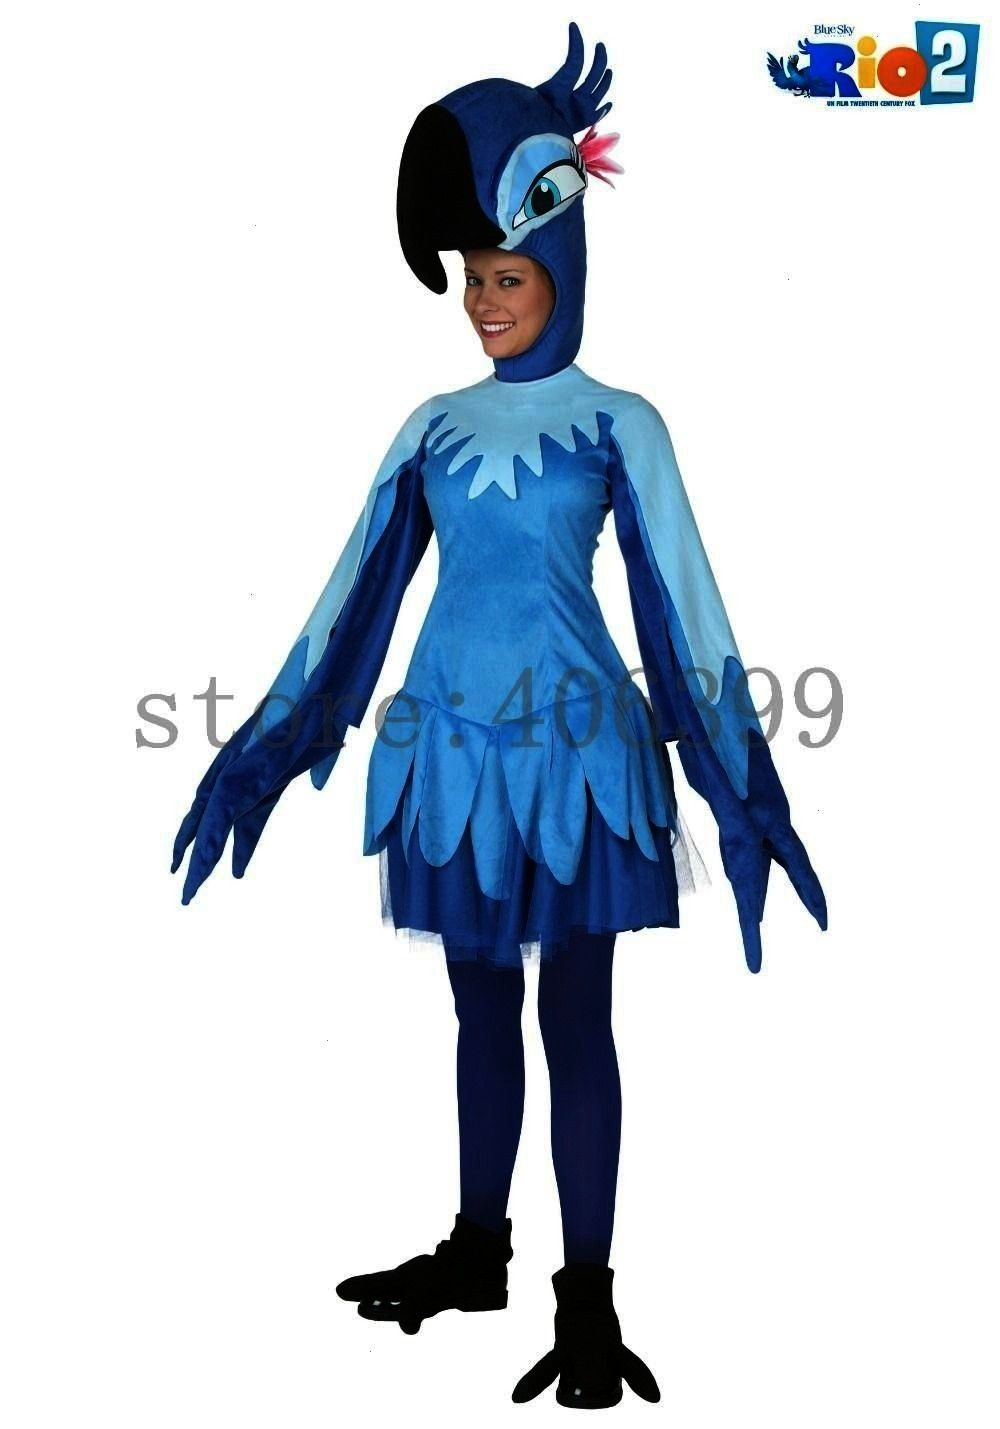 Halloween Costume Parrot Halloween Costume Little Parrot Halloween Costume from carterscom Shop clothing & accessories from a trusted name in kids, toddlers, and baby clothes |  Parrot Halloween Costume Little Parrot Halloween Costume from carterscom Shop clothing & accessories from a trusted name in kids, toddlers, and b...2...Parro